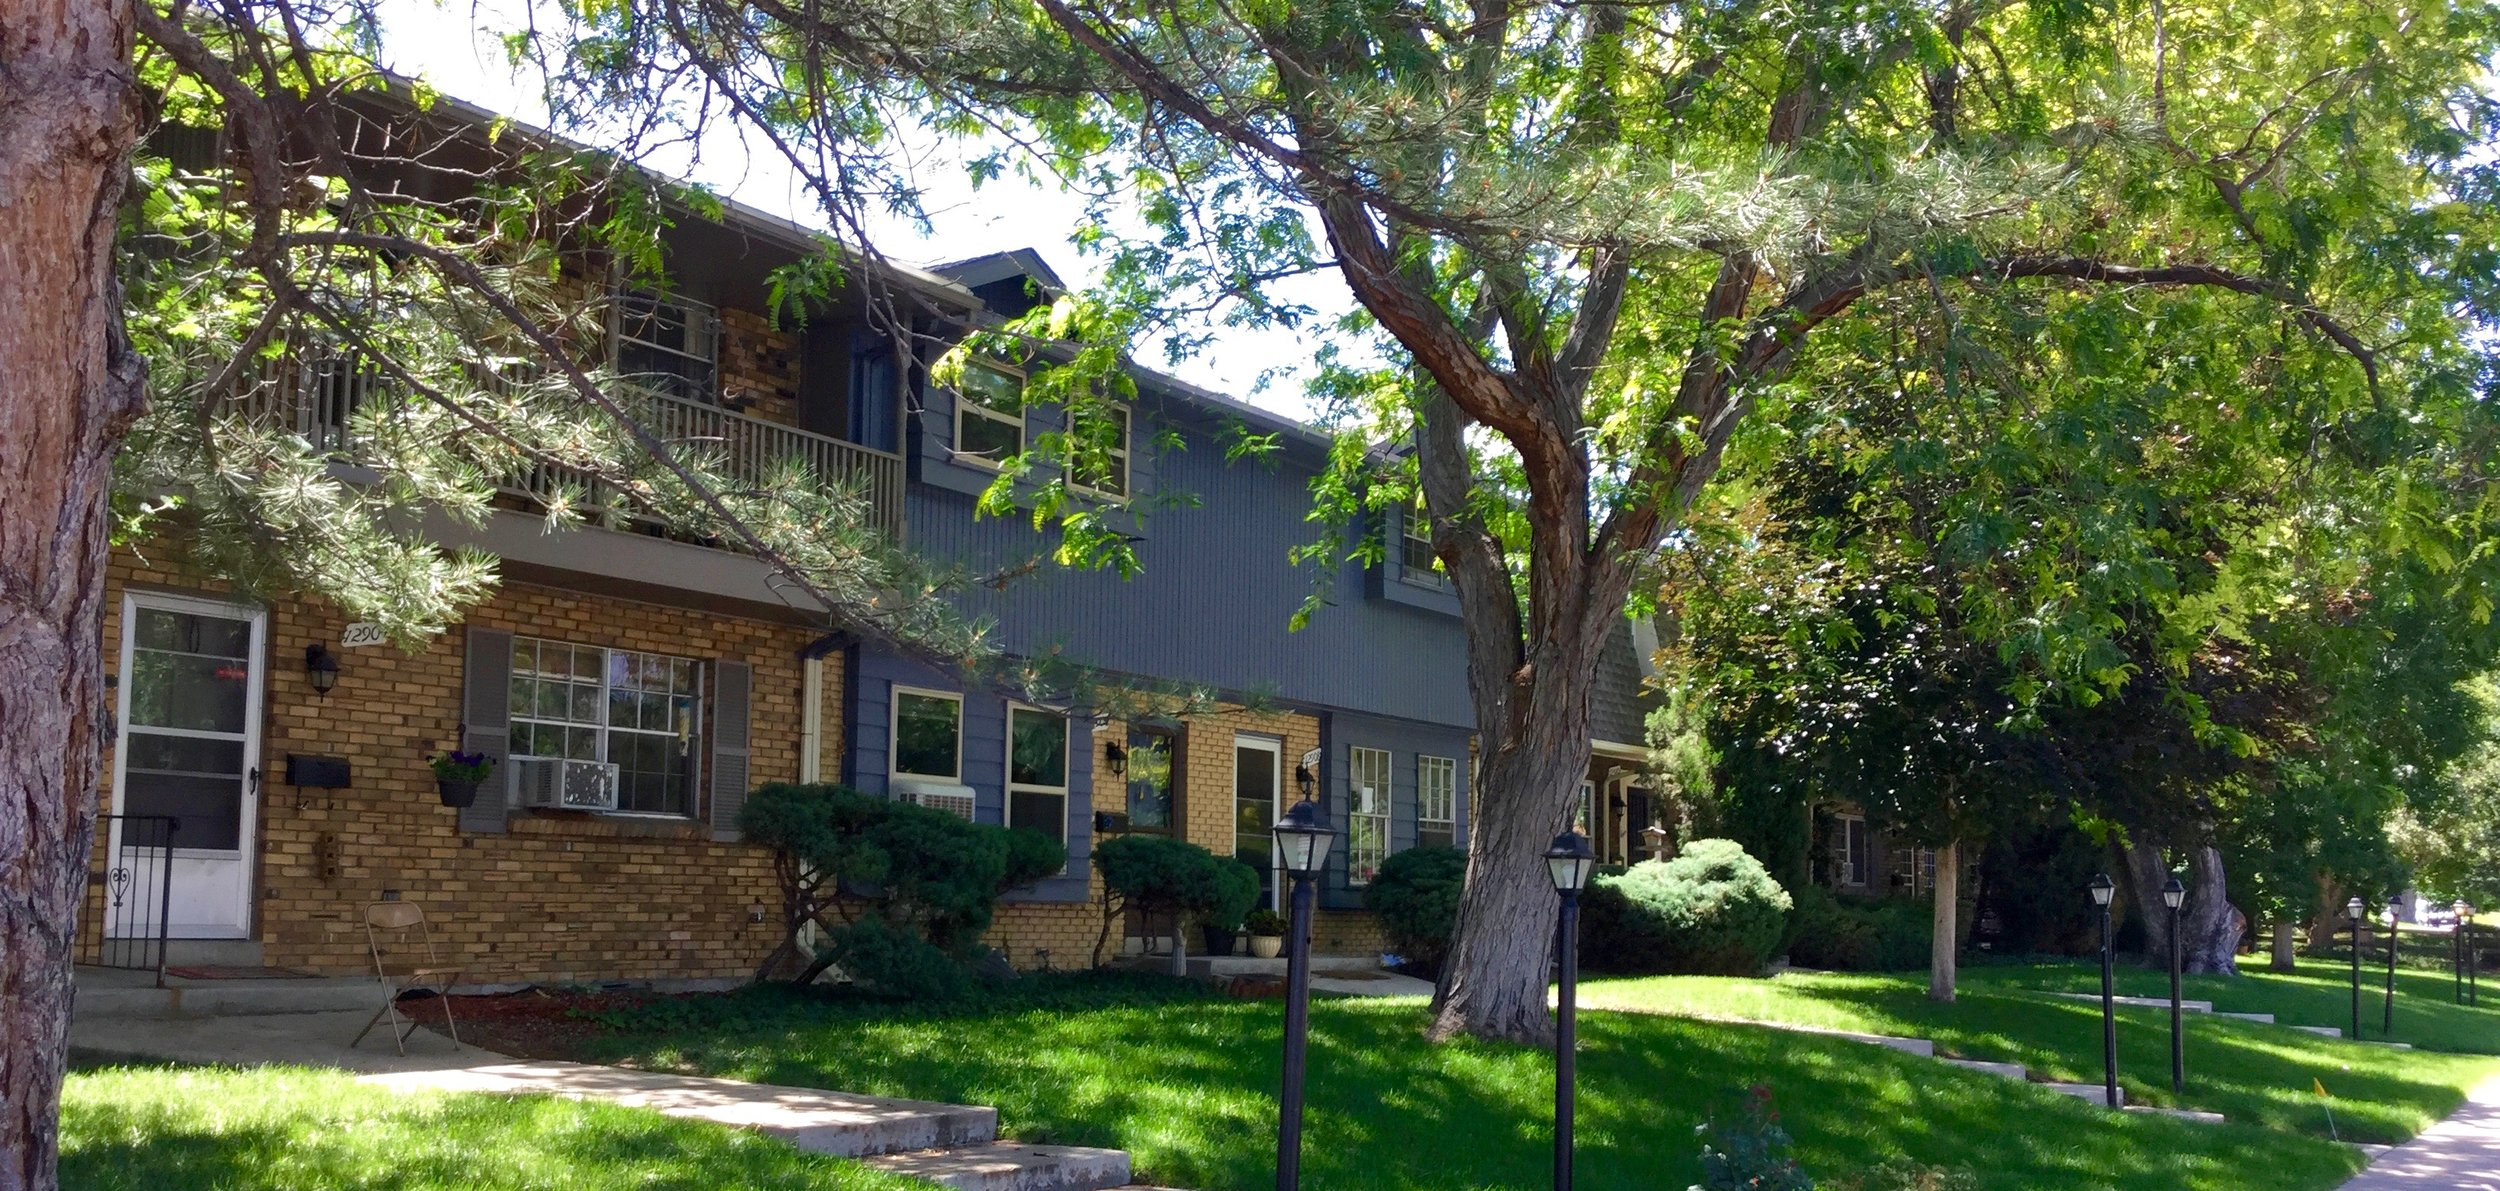 Briarwood Condos in Applewood near Golden, Colorado feature 2 and 3 bedroom units